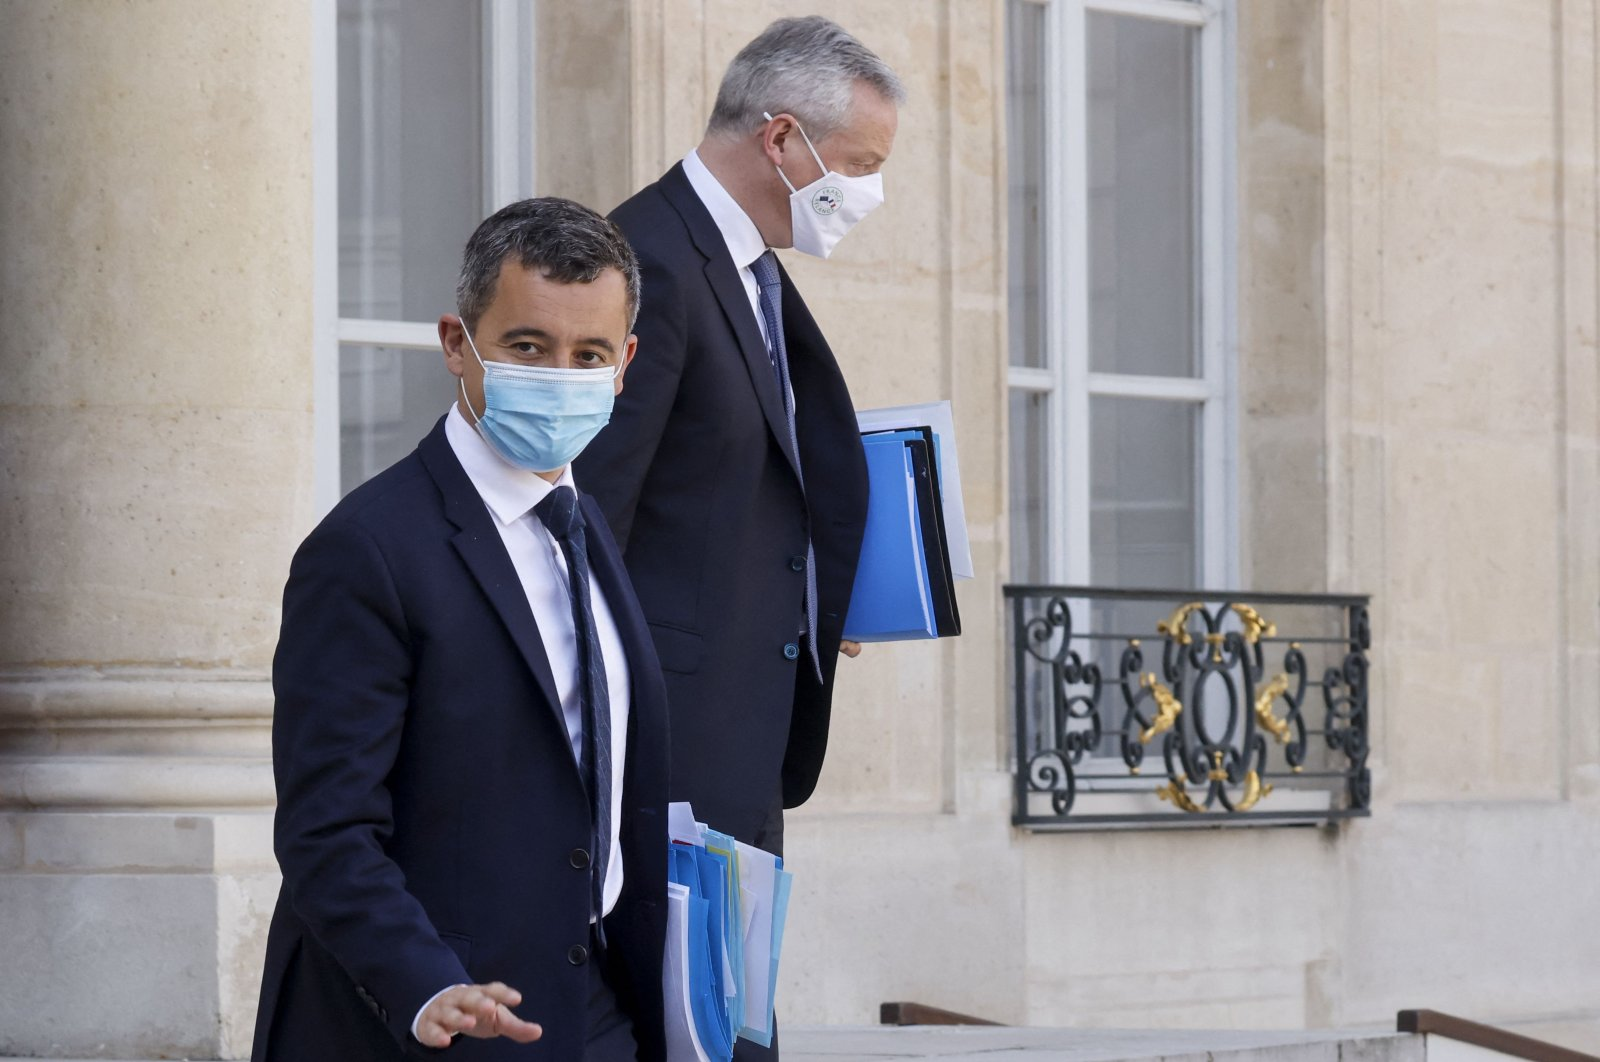 French Interior Minister Gerald Darmanin (L) and French Economy and Finance Minister Bruno Le Maire, wearing protective face masks, leave after a weekly Cabinet meeting at The Elysee Presidential Palace in Paris, France, March 31, 2021. (AFP Photo)